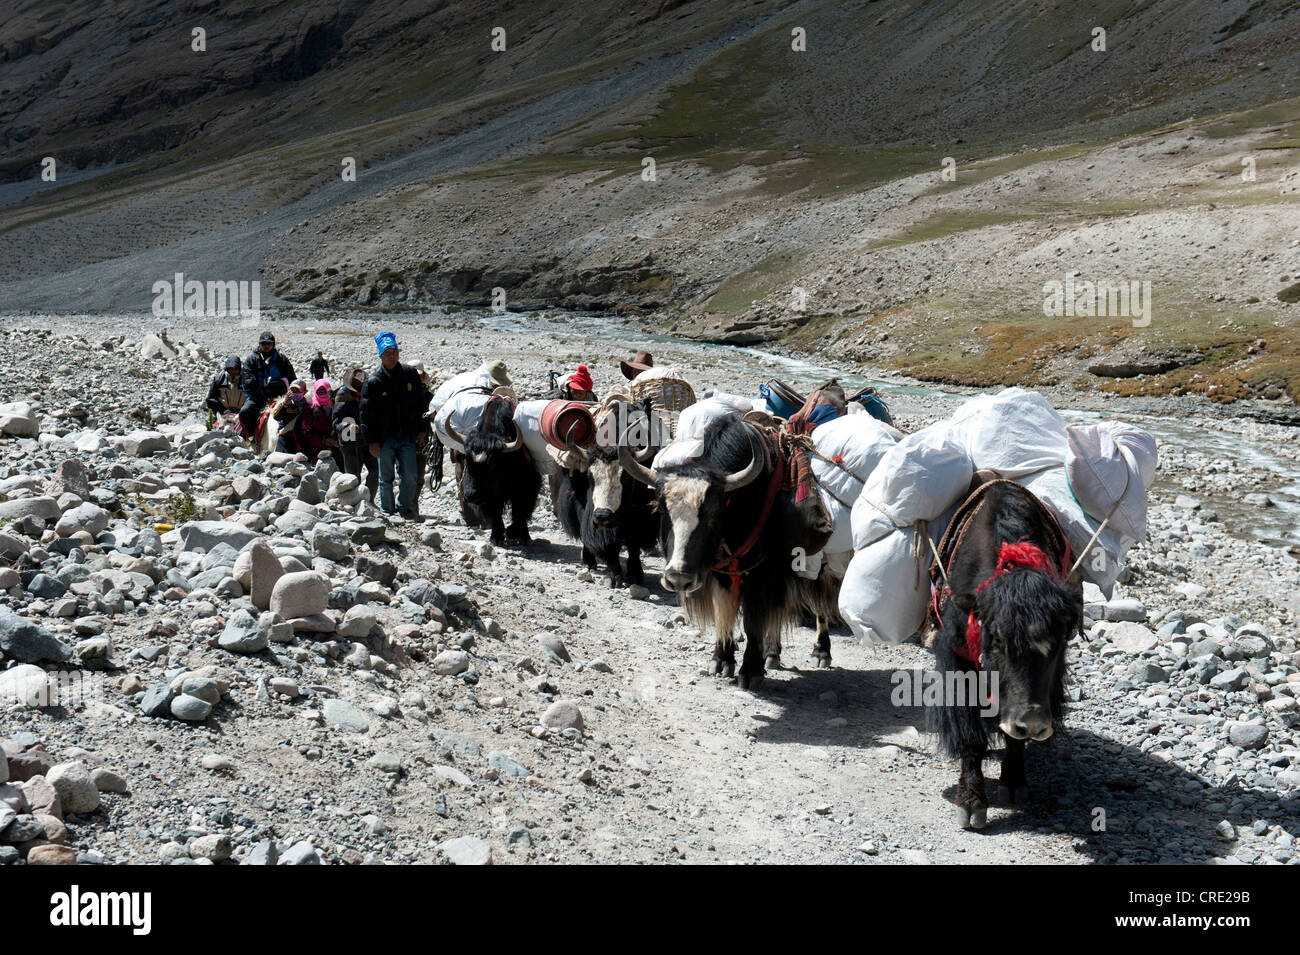 Tibetans with packed yaks, Tibetan Buddhism, pilgrimage route to the sacred Mount Kailash, Gang Rinpoche, Kora, - Stock Image